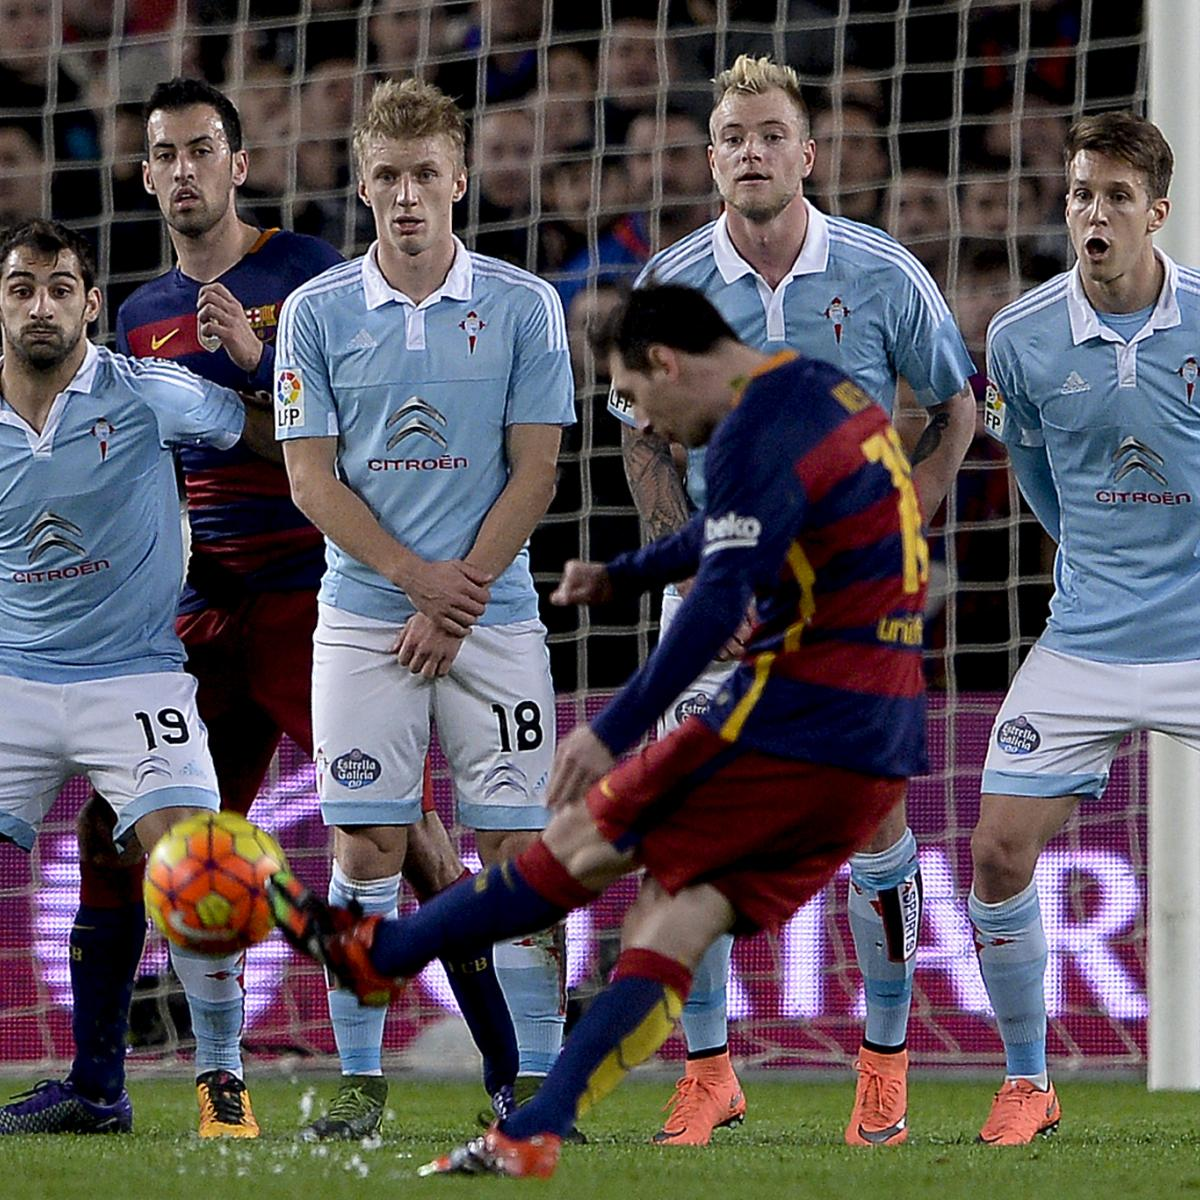 Barcelona Vs. Celta Vigo: Goals, Highlights From La Liga